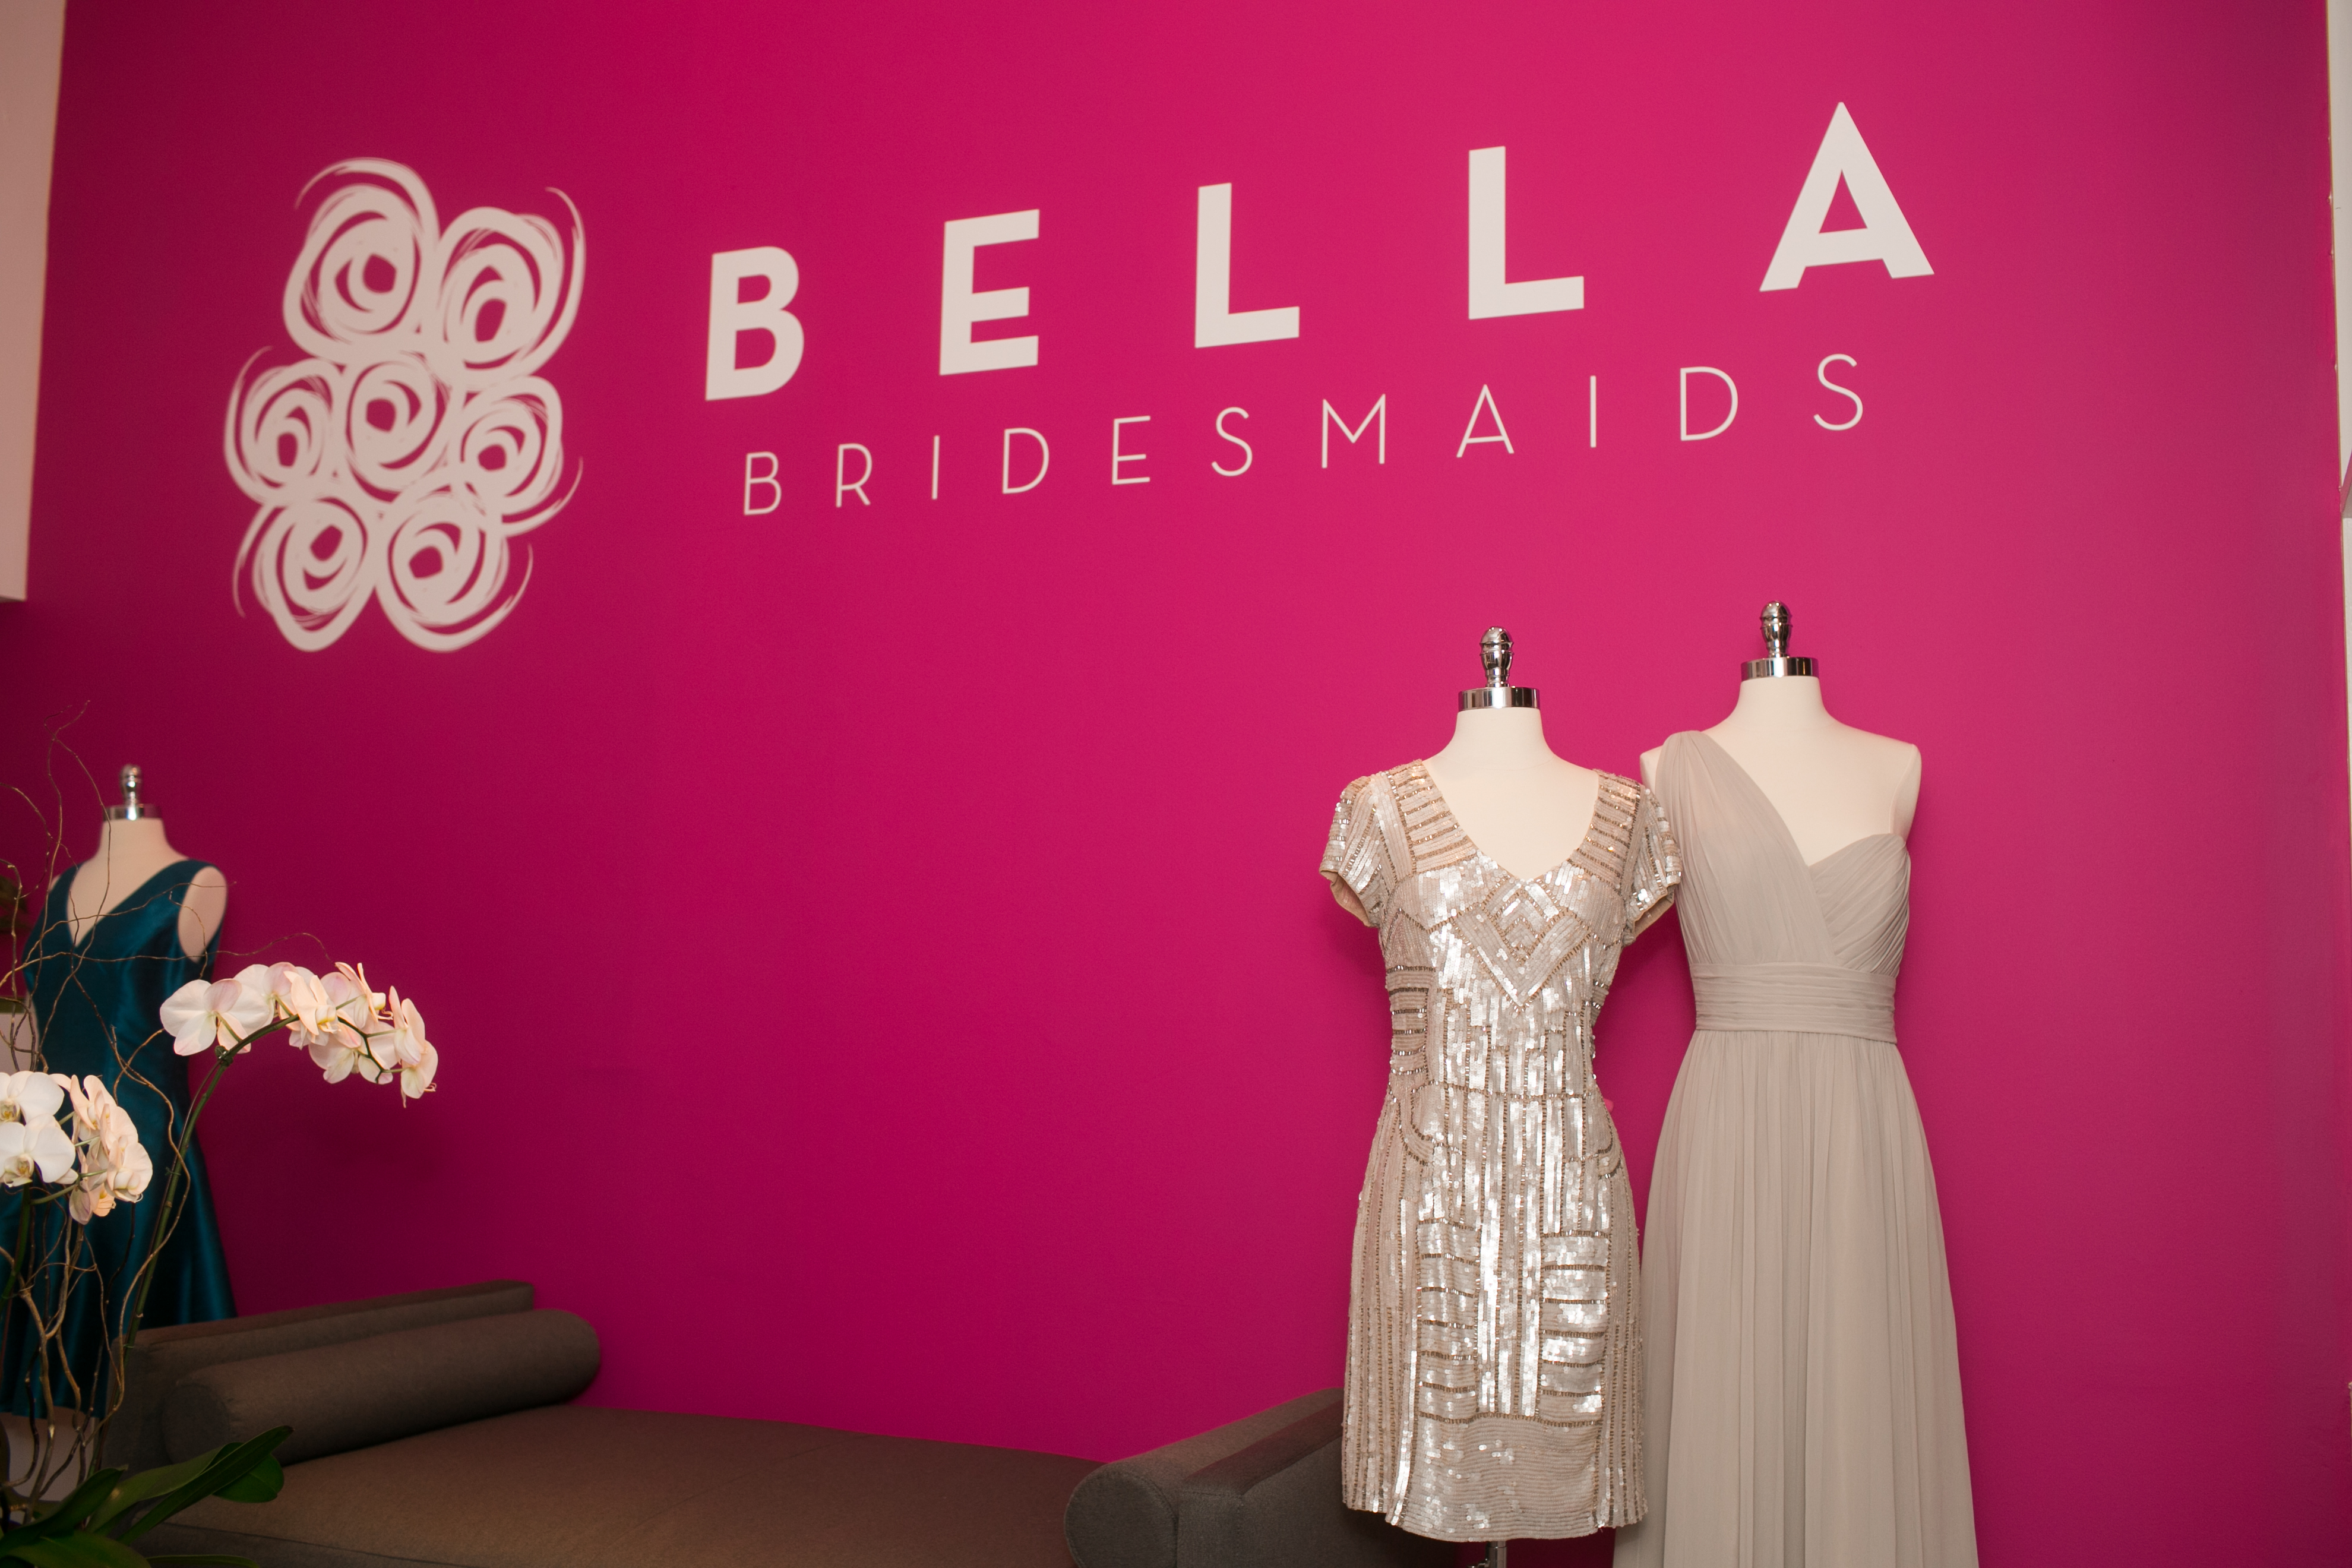 View More: http://carlyfullerphotography.pass.us/bella-bridesmaid-philadelphia